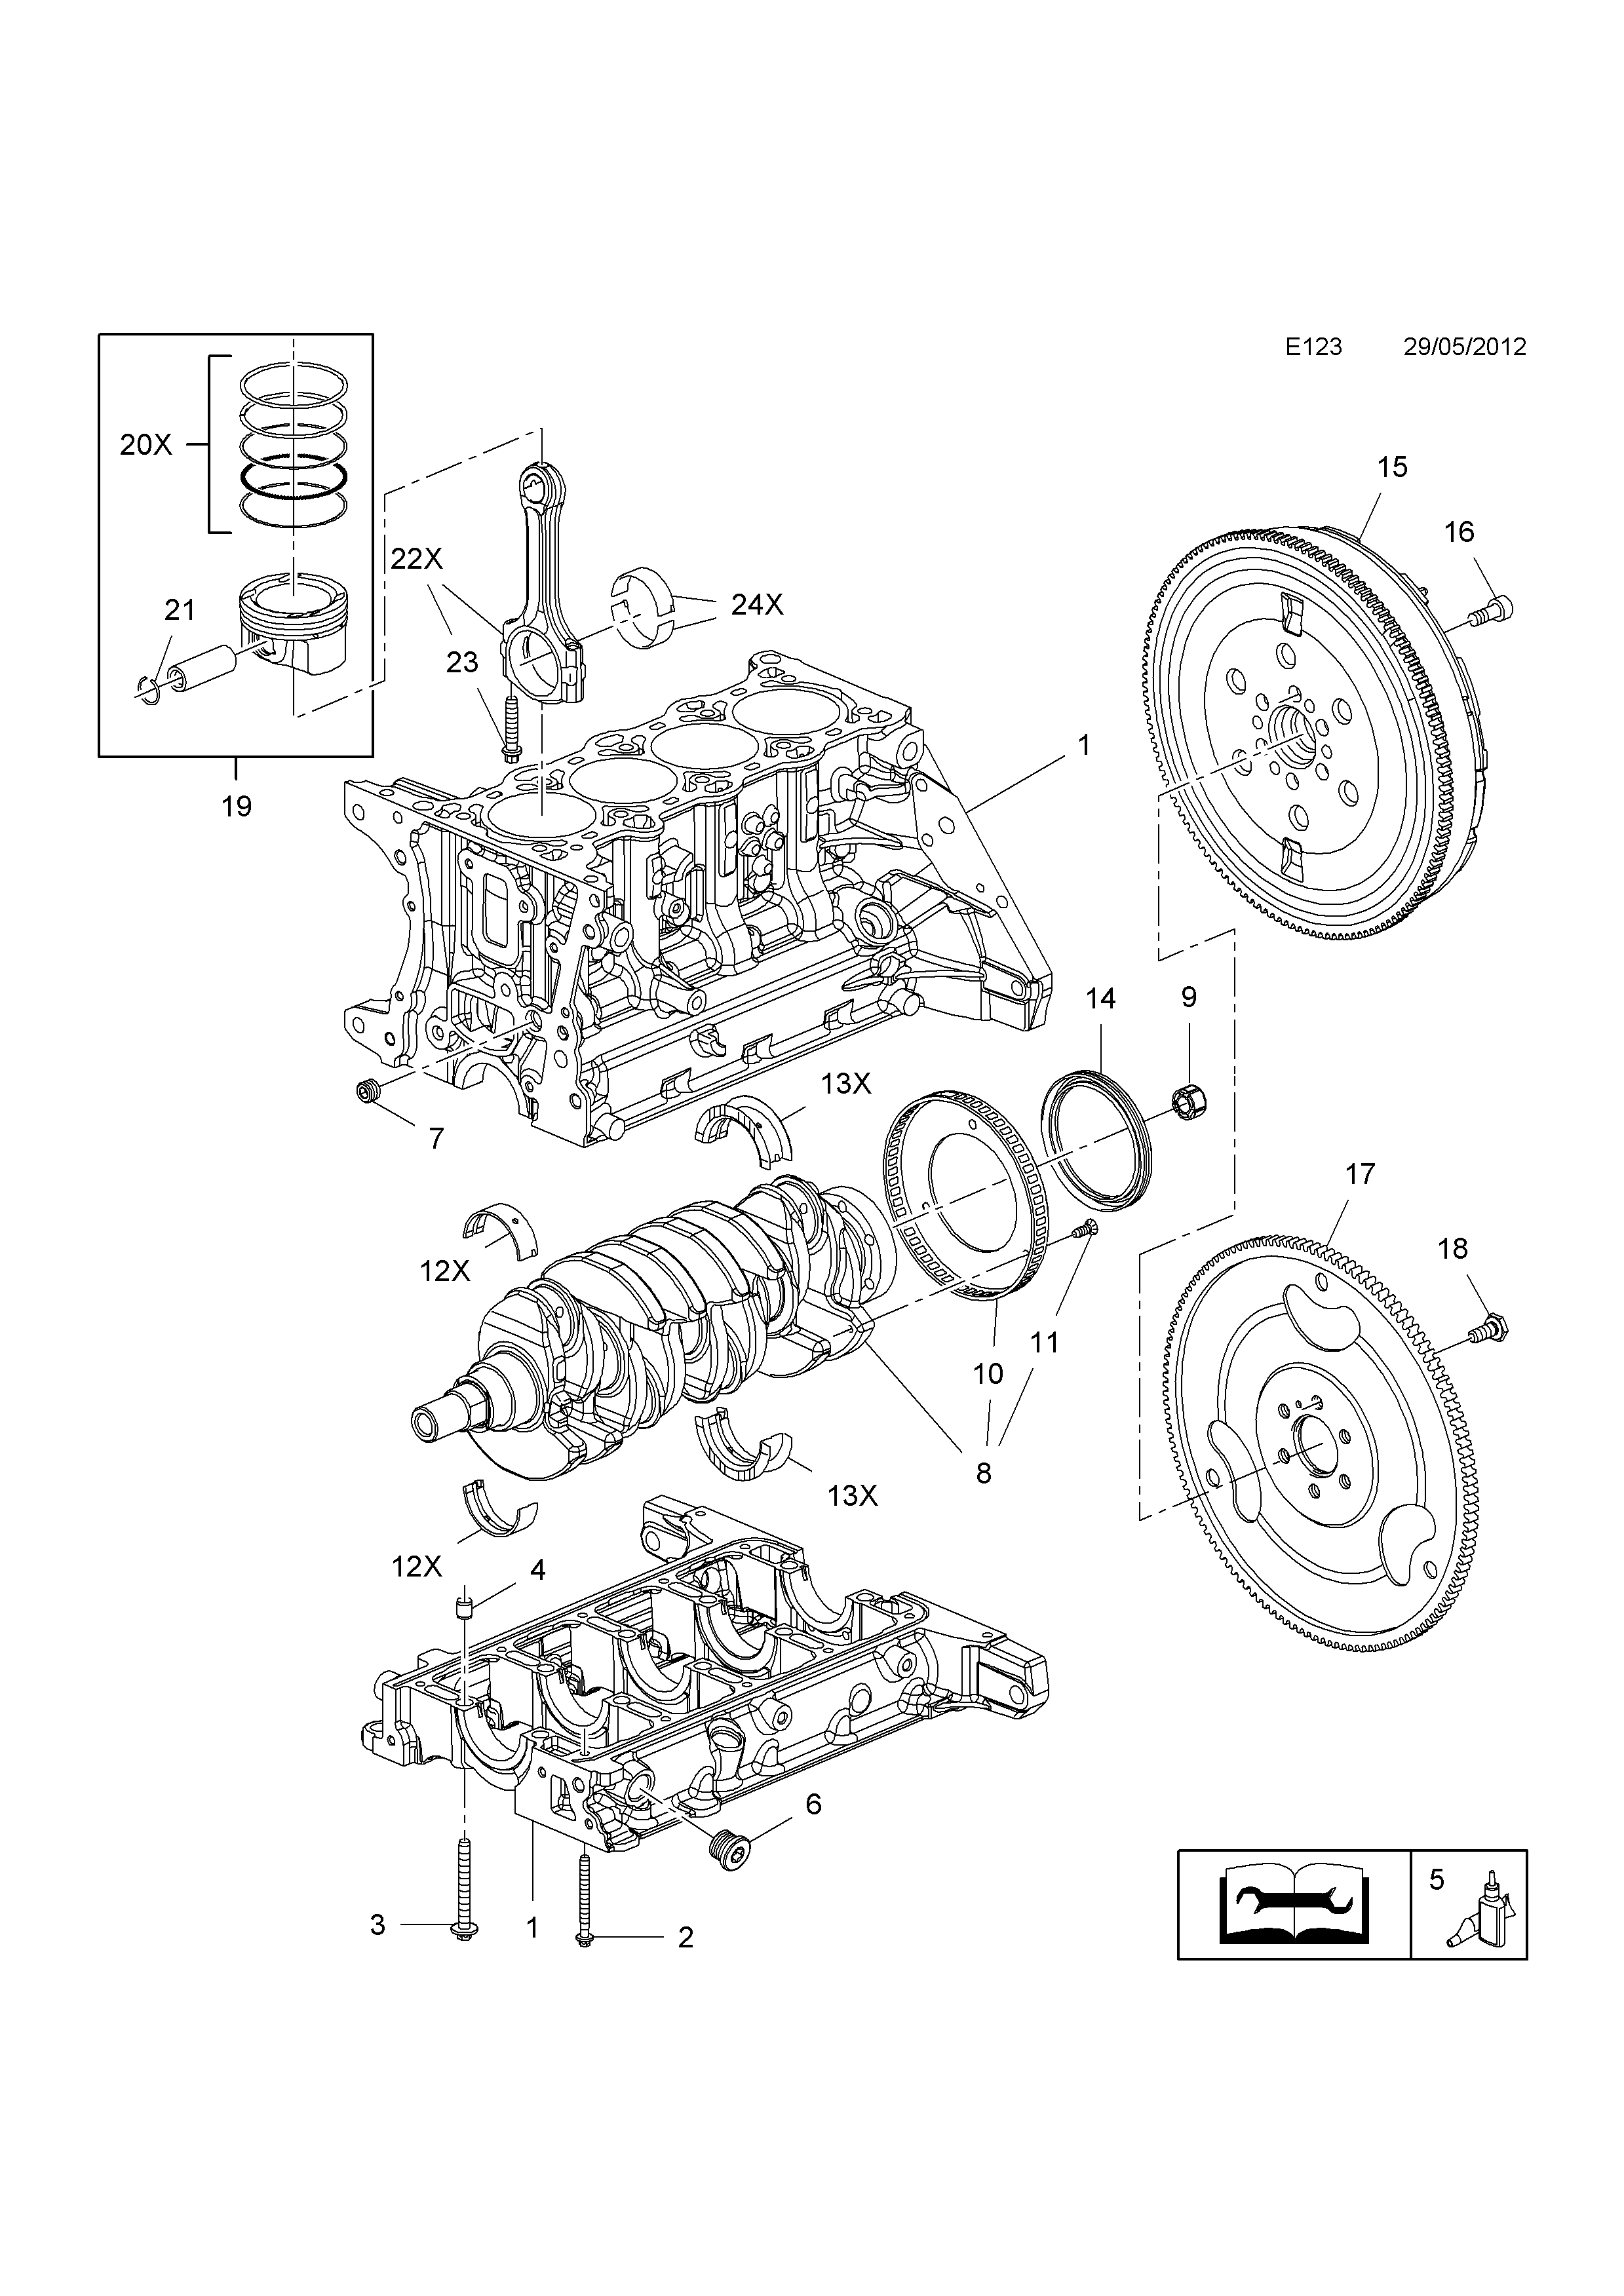 Opel zafira c 2012 e engine and clutch 1 a14nelluj list of parts ccuart Image collections